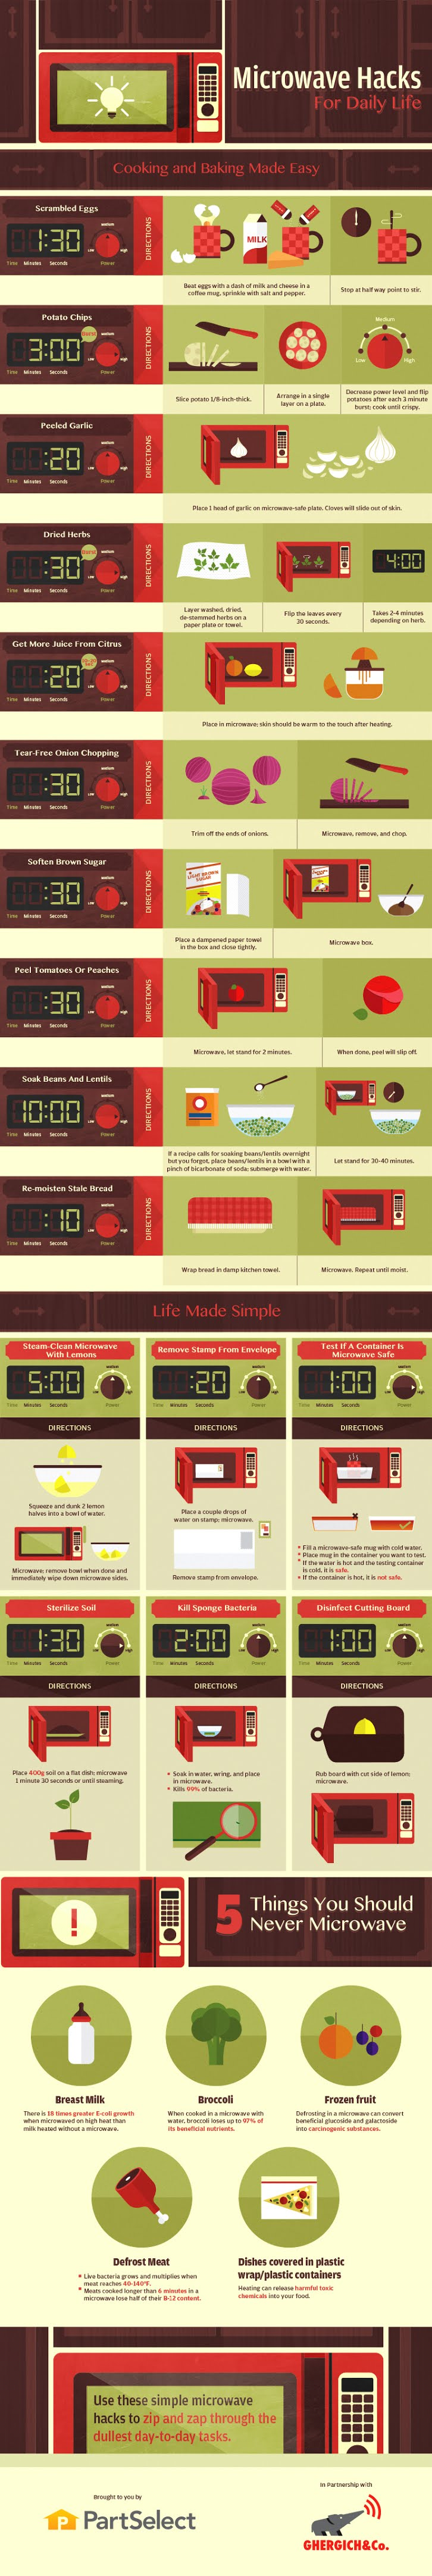 Microwave Hacks for Daily Life #infographic #Microwave Hacks #Microwave #infographics #Daily Life